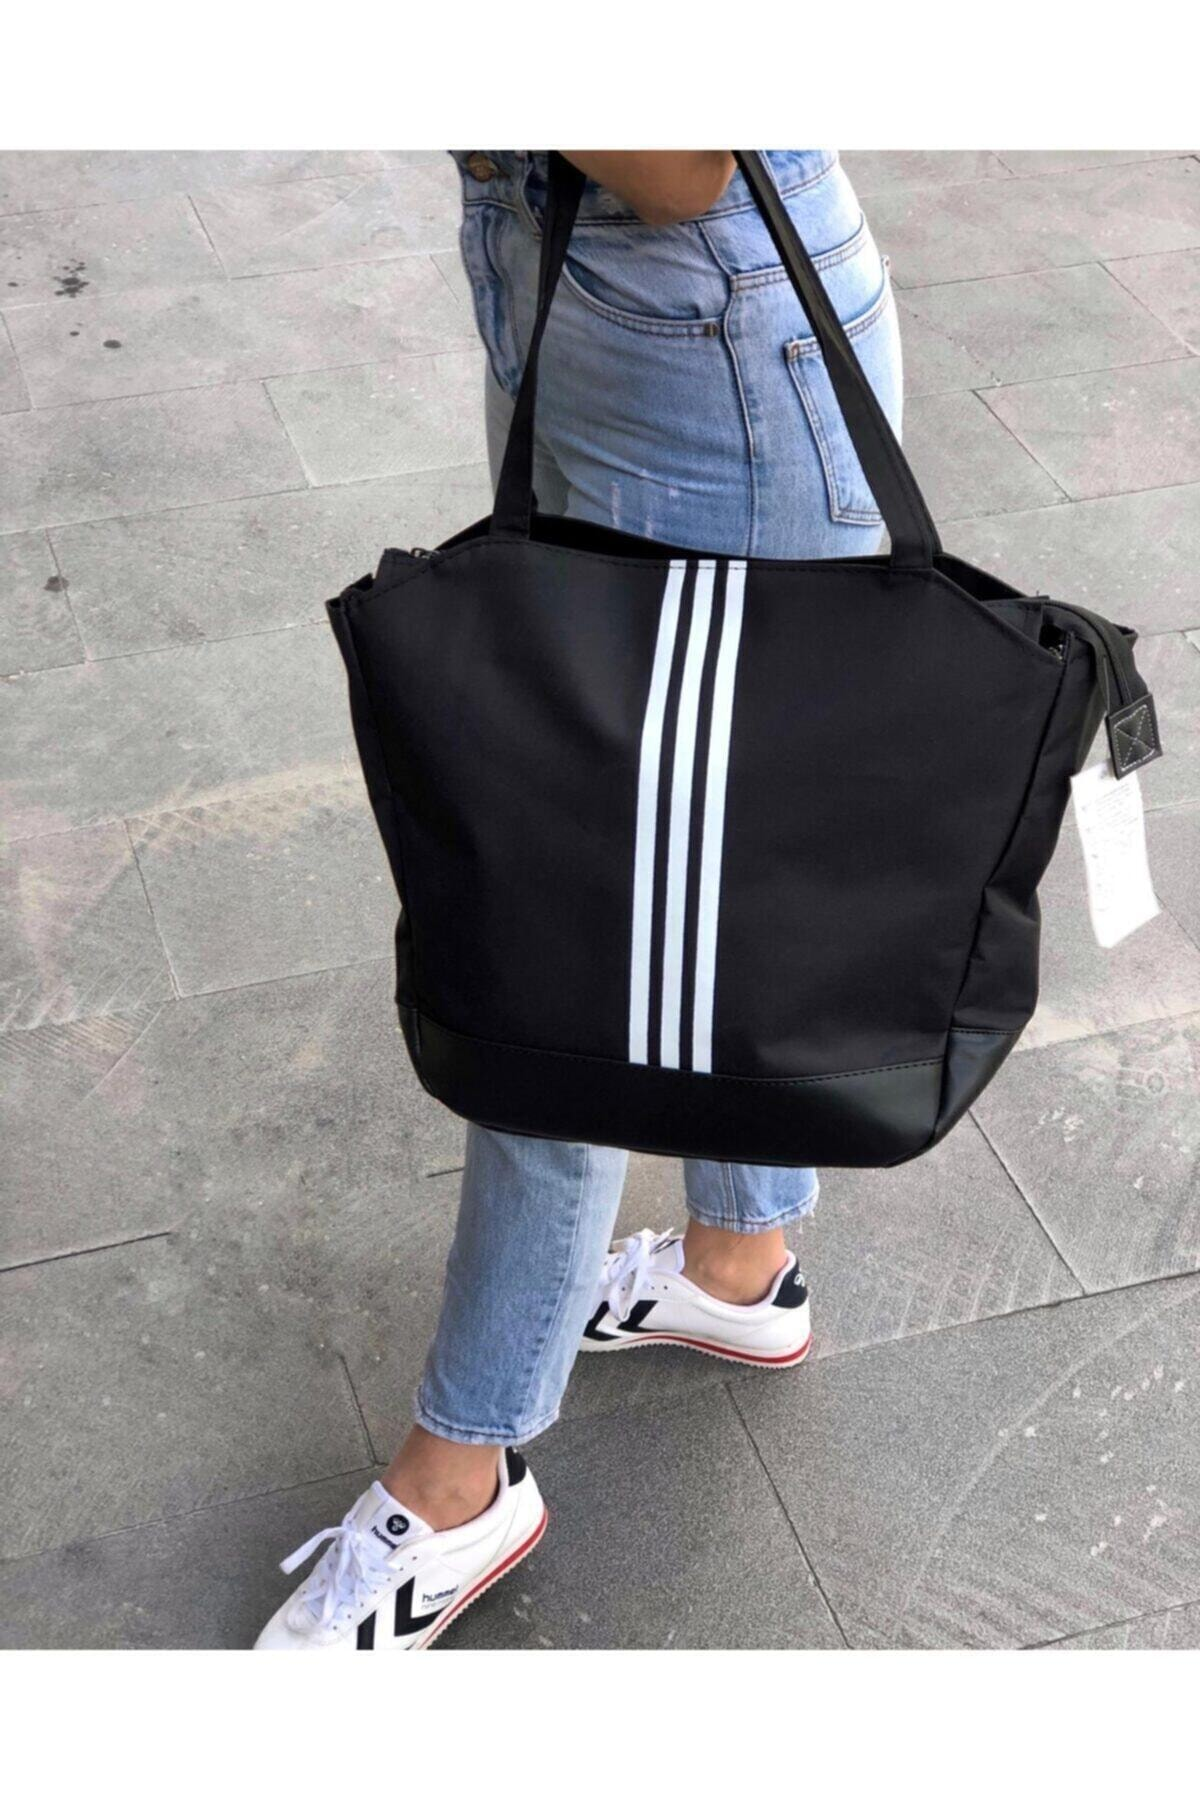 Women's Black White Striped Bottom Part Leather Detail Shoulder Bag